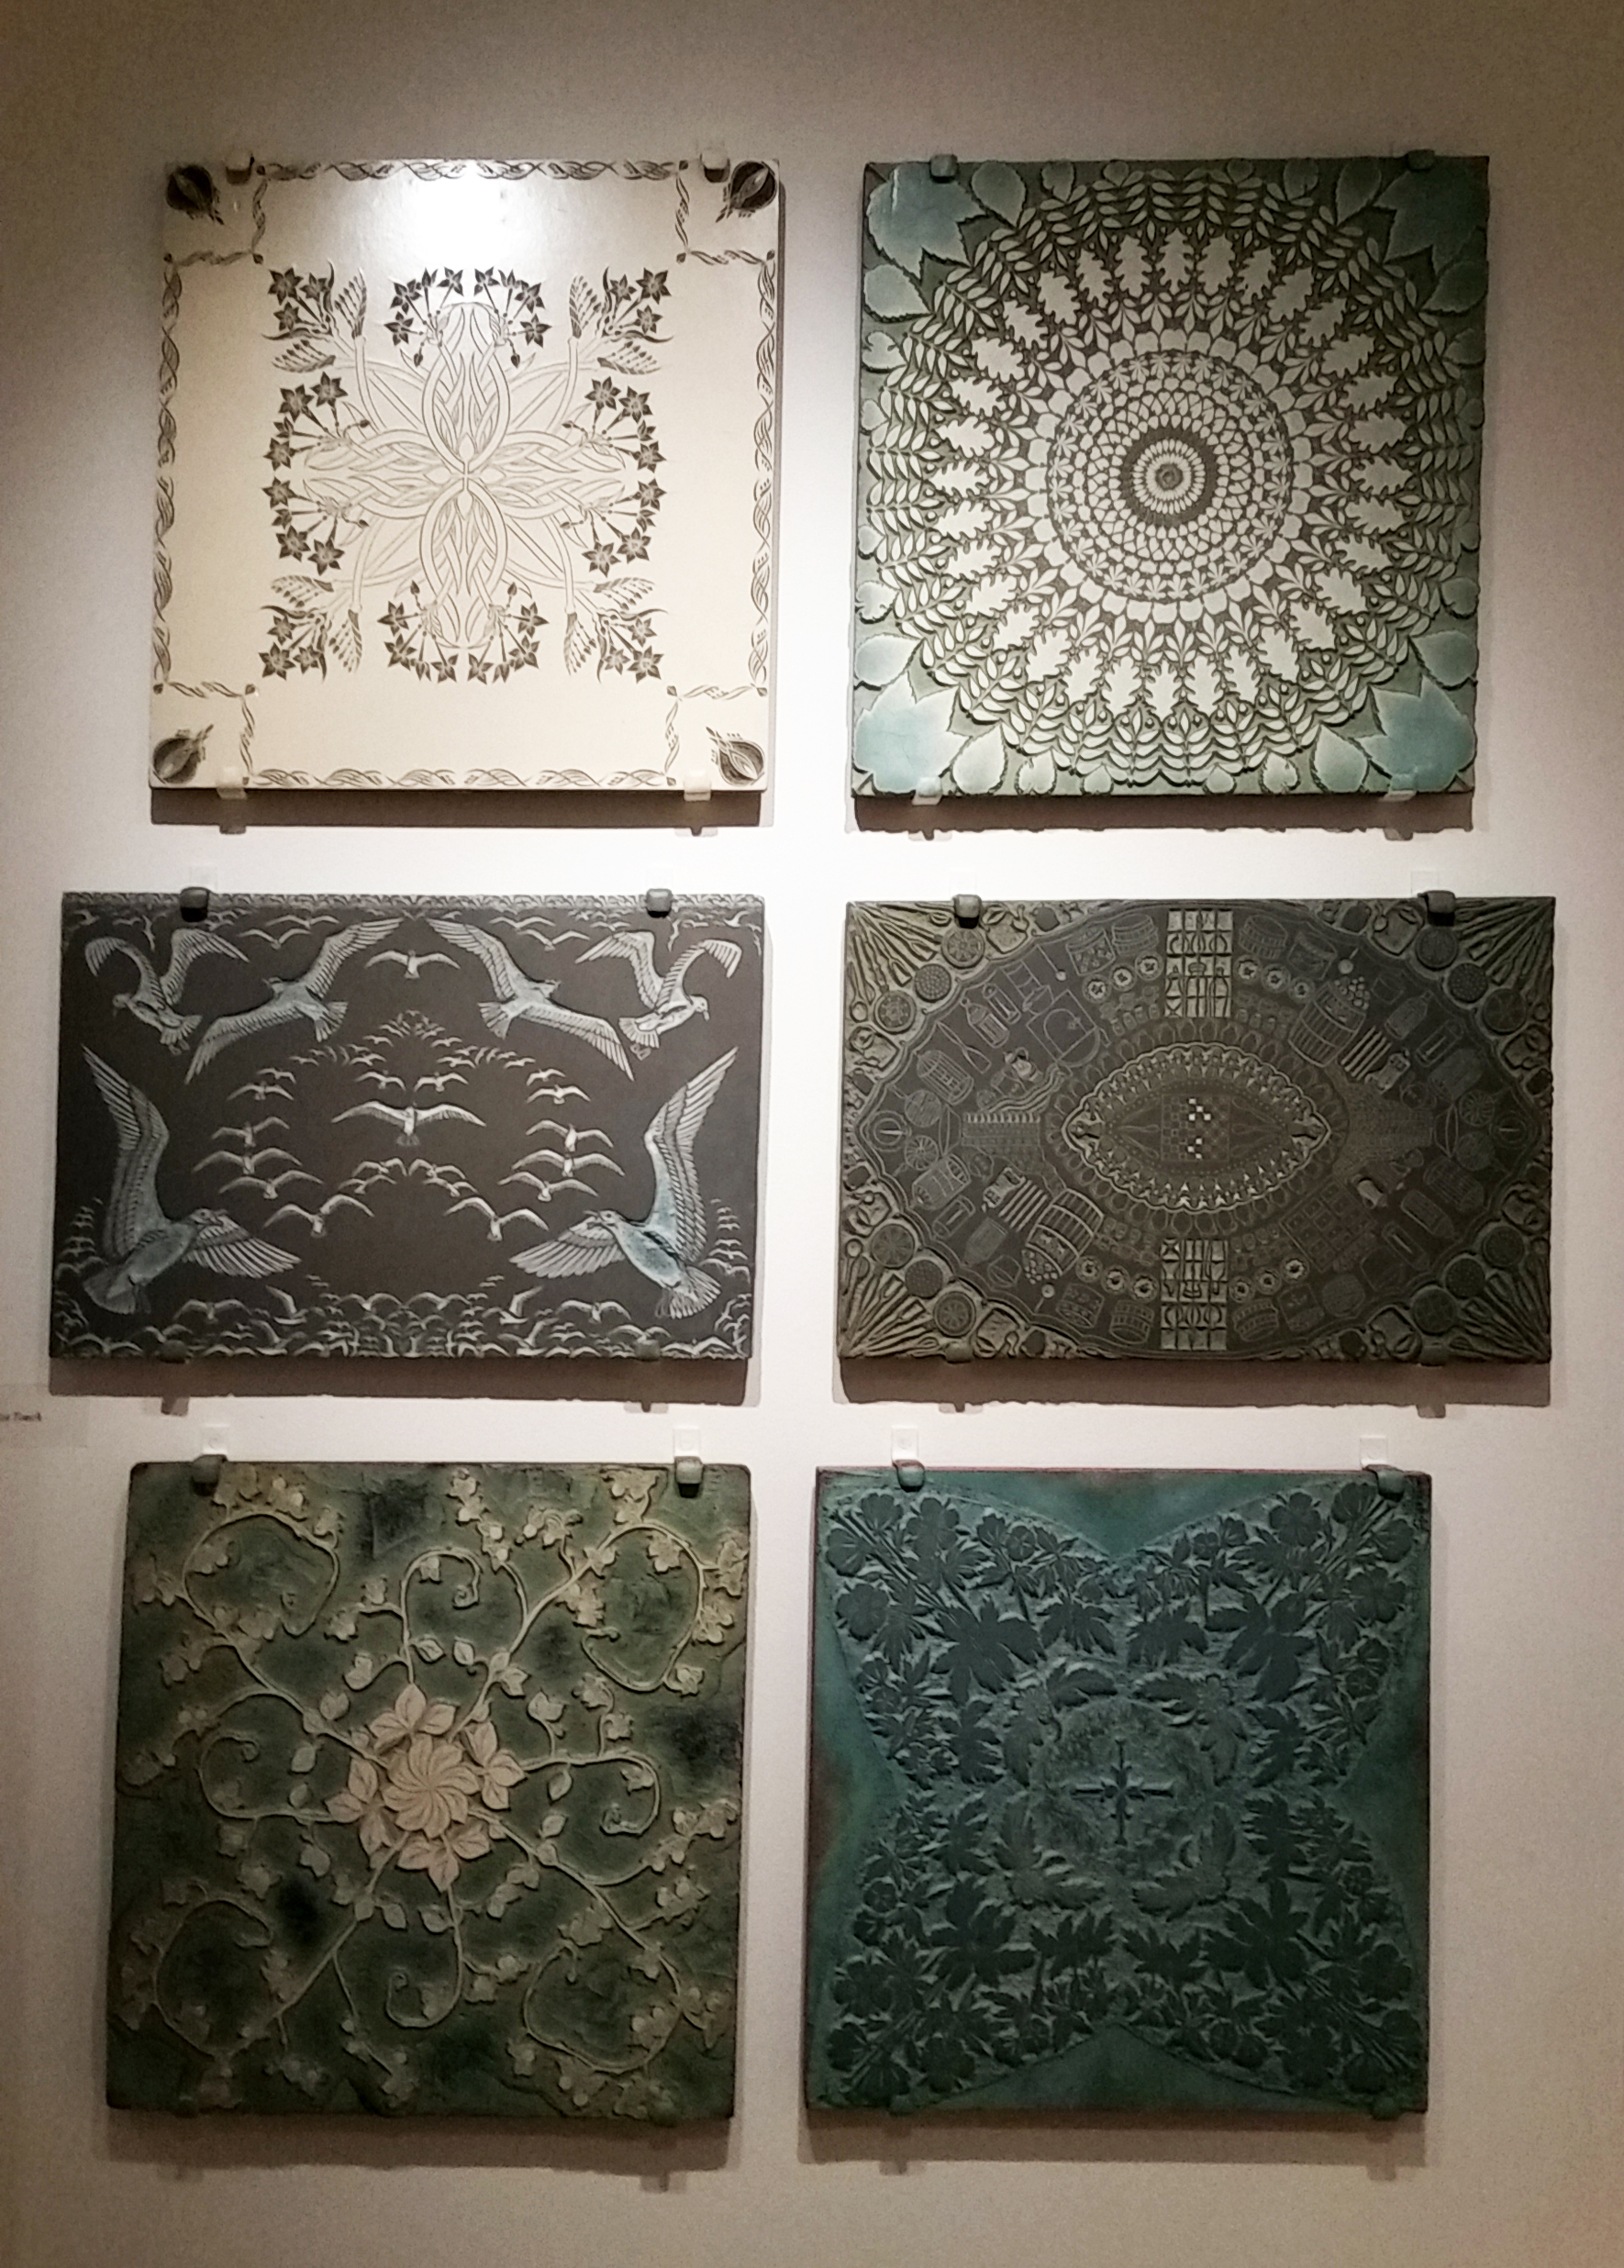 Linoleum blocks carved by the Folly Cove Designers